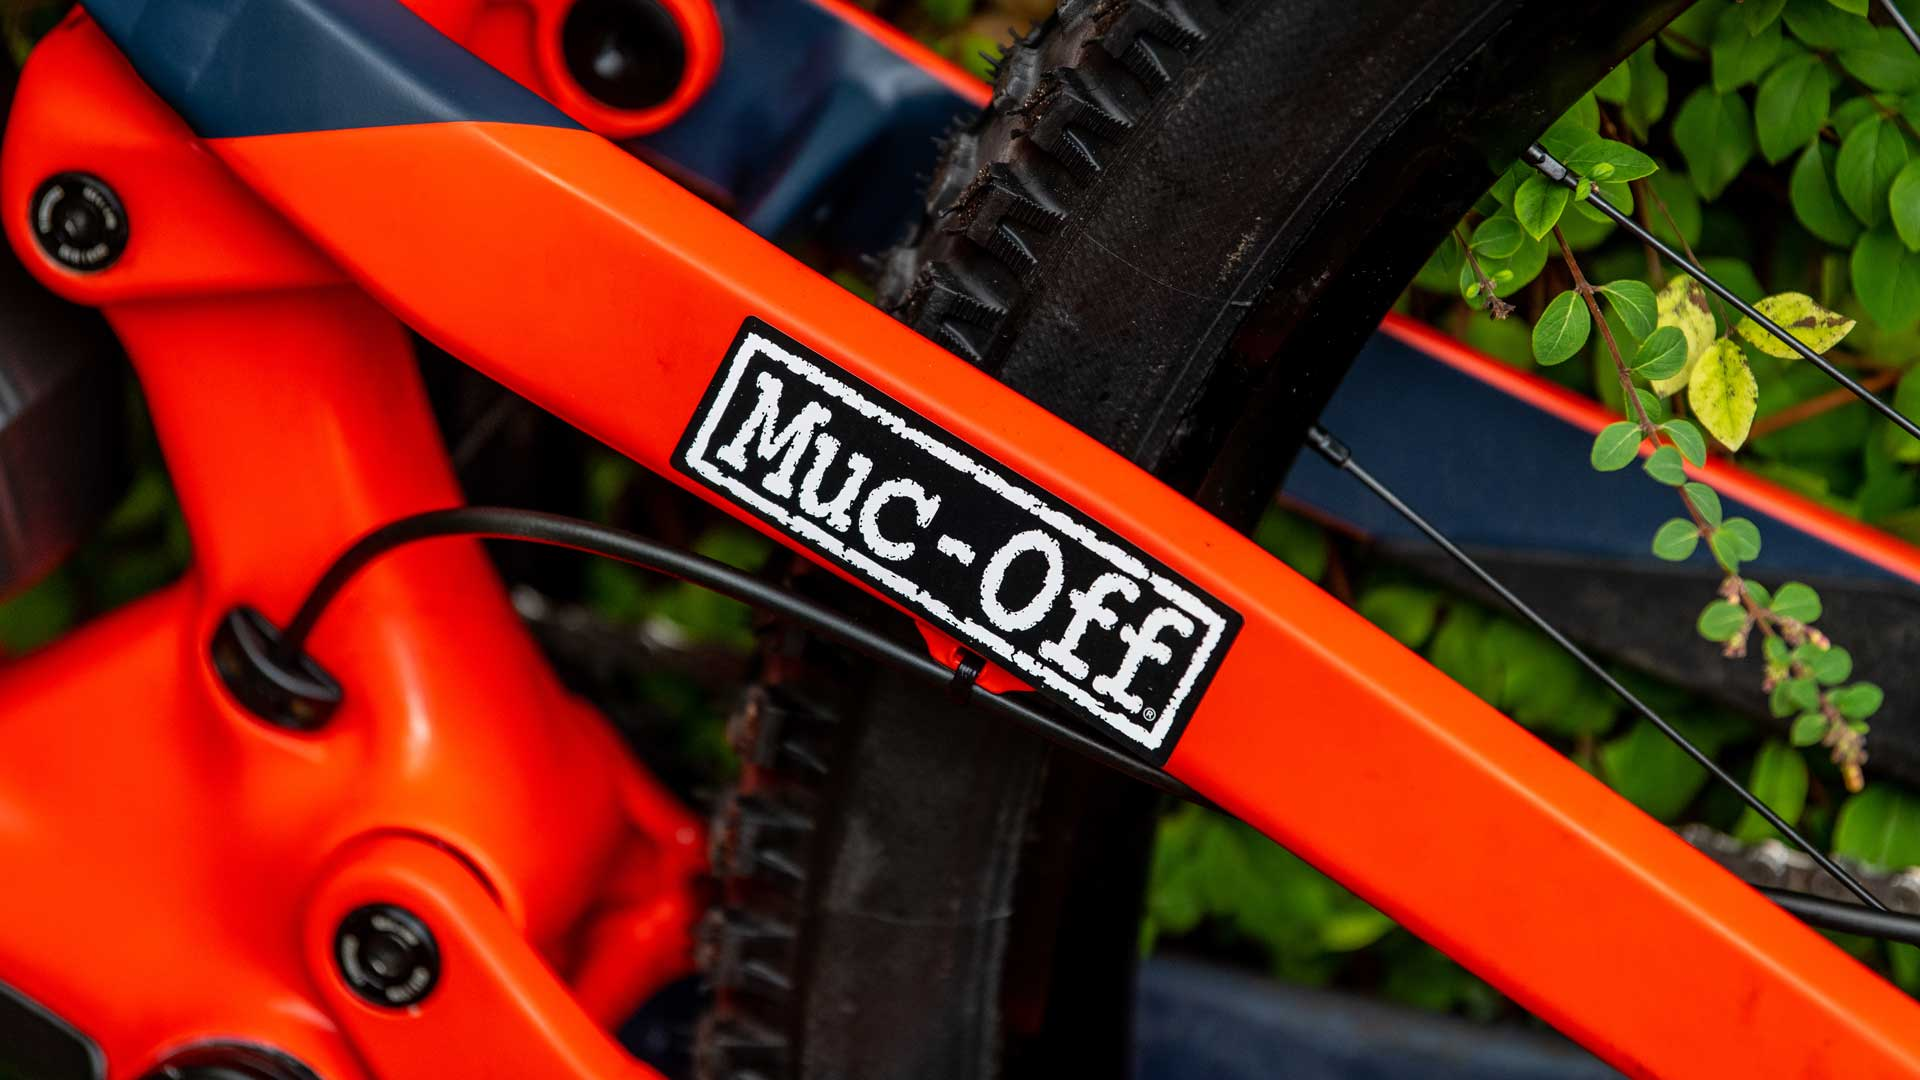 Close up of muc-off sticker stuck to an orange bike frame